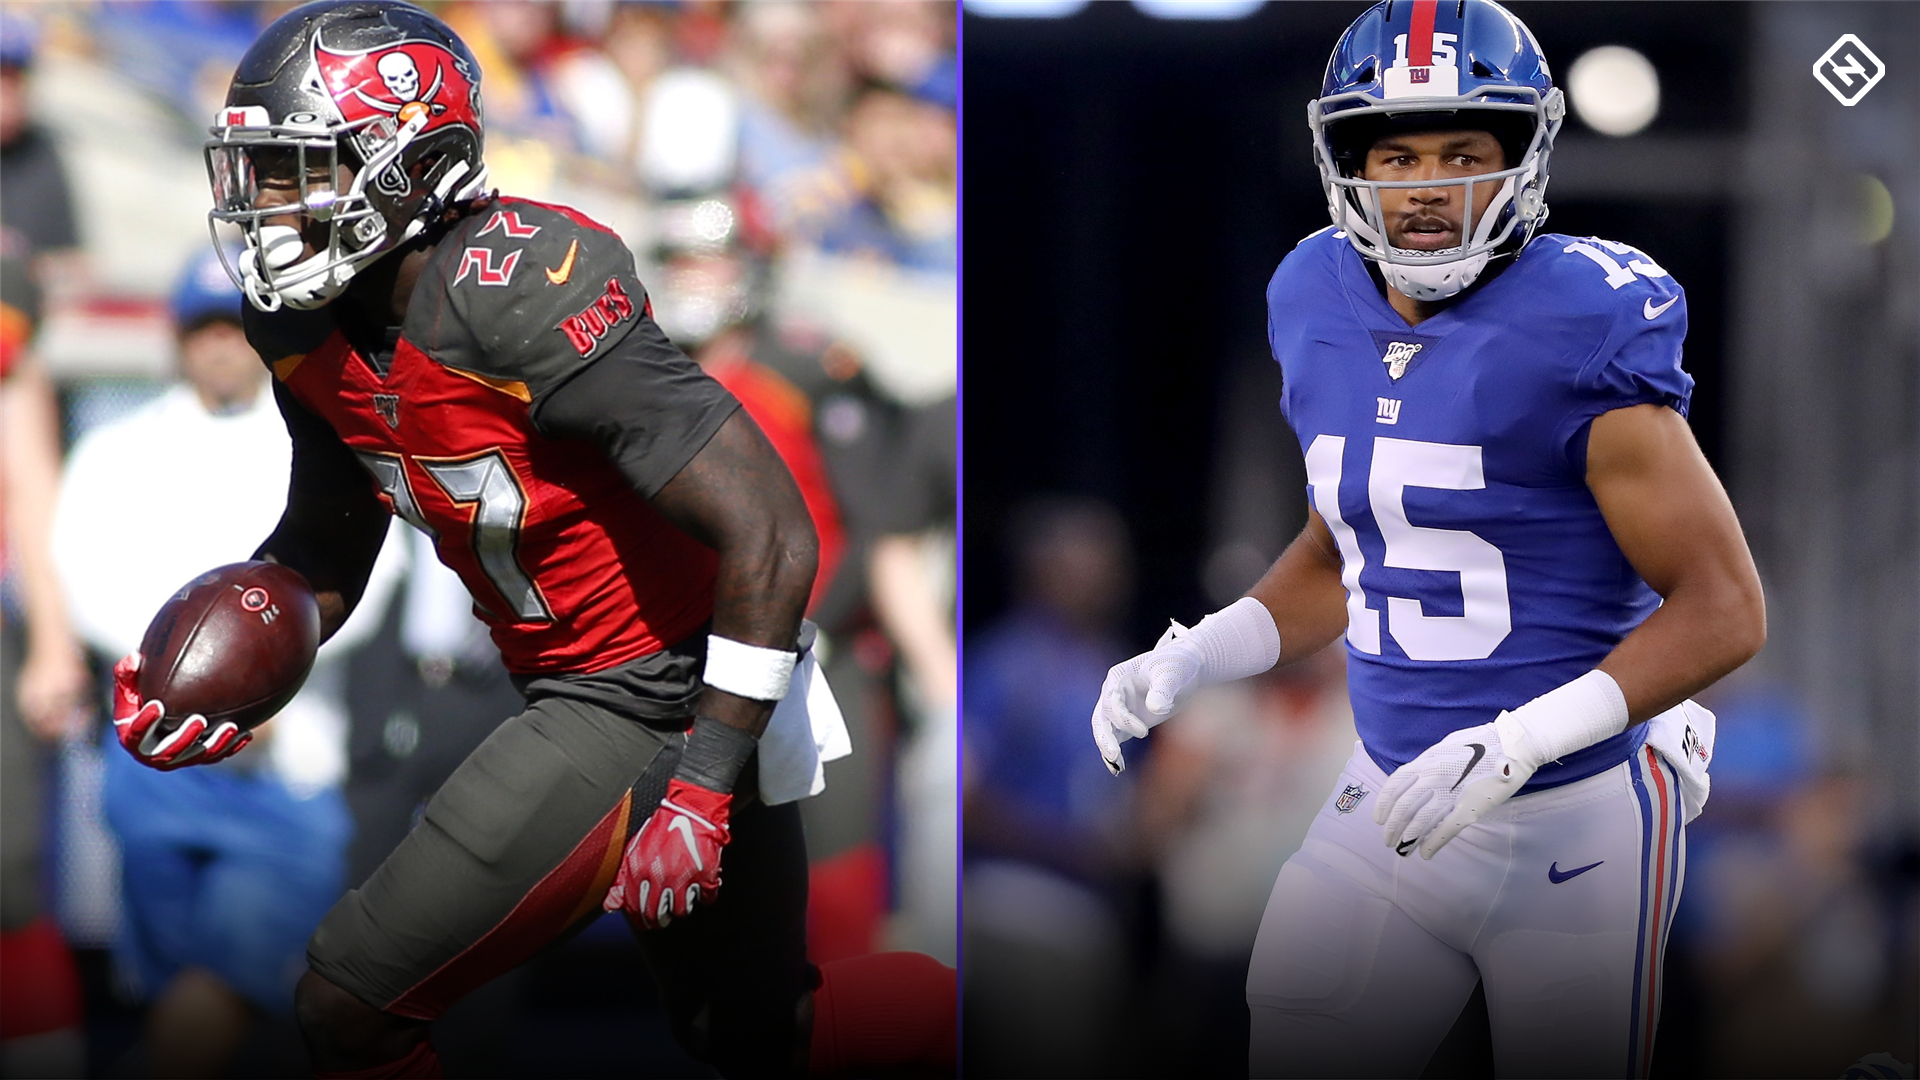 Best Fantasy Week 5 Waiver Pickups: Ronald Jones breaks out, Golden Tate to return from suspension